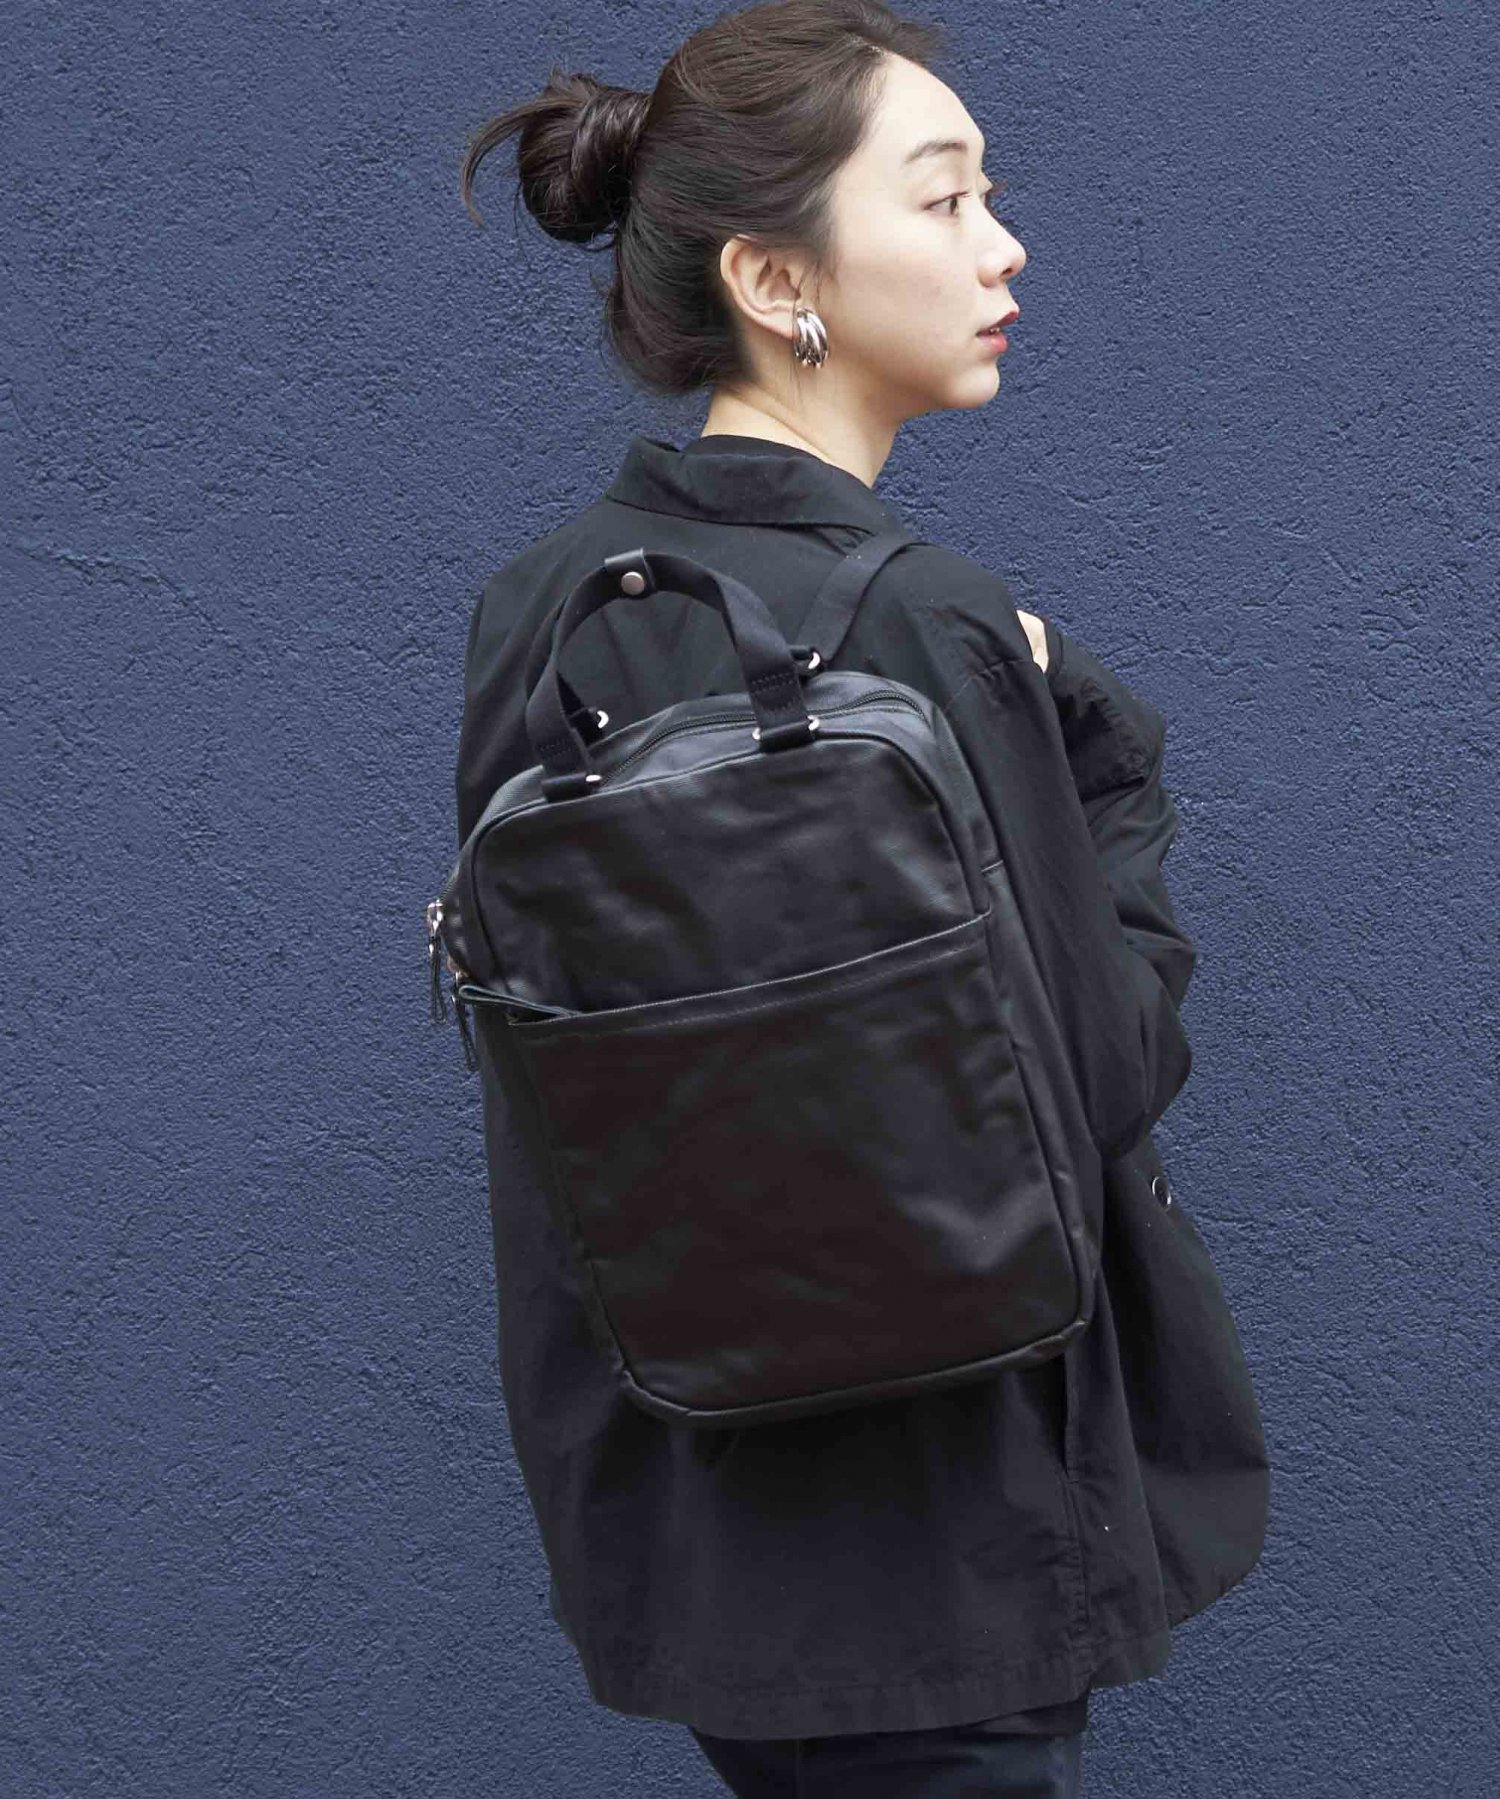 【QWSTION】Small Pack Organic Jet Black